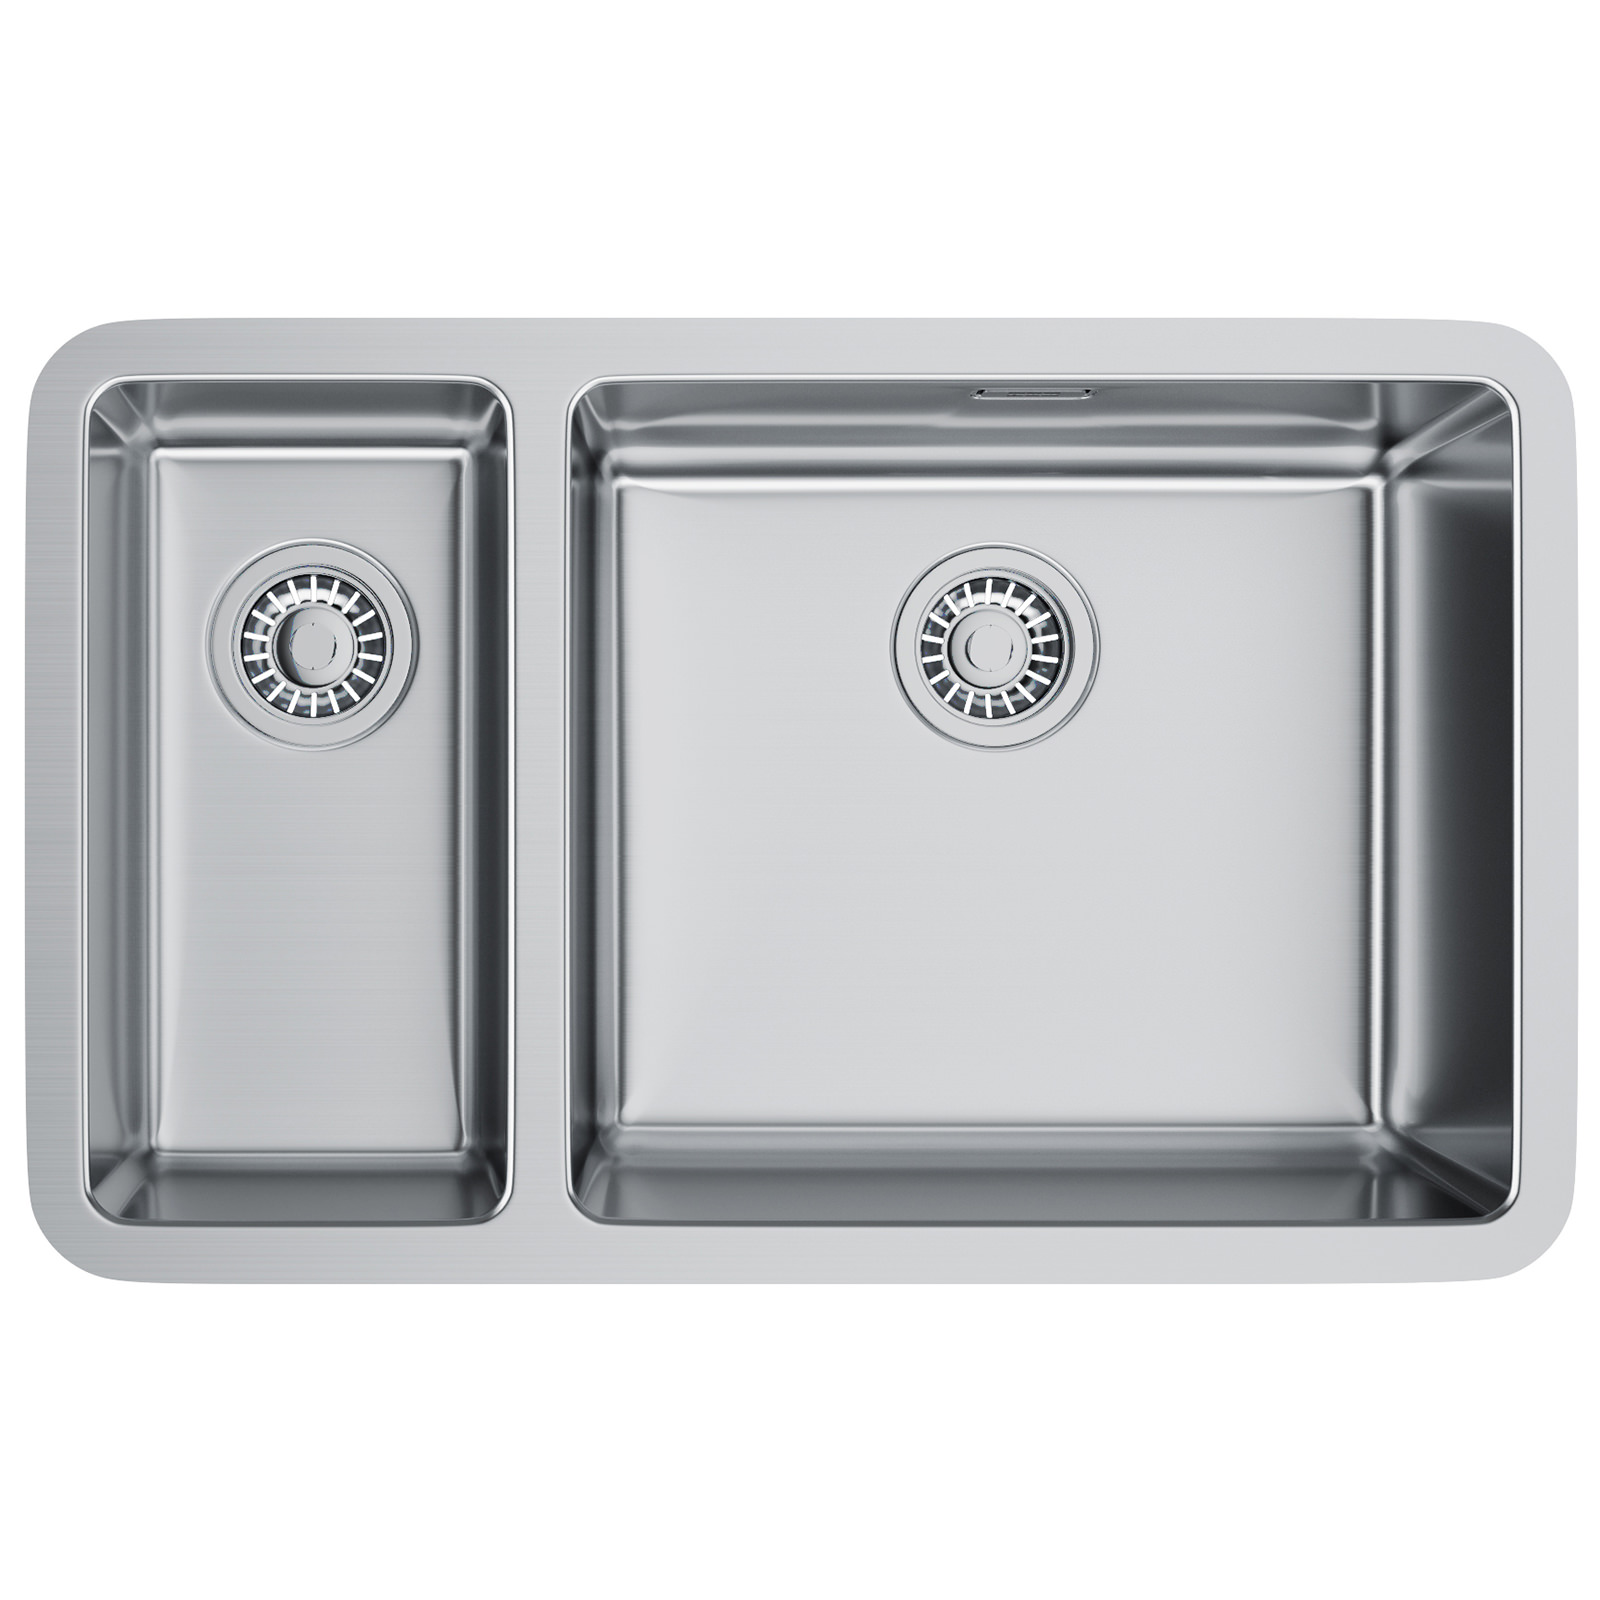 Franke Ss Sinks : Franke Kubus KBX 160 45-20 Stainless Steel Undermount Kitchen Sink ...